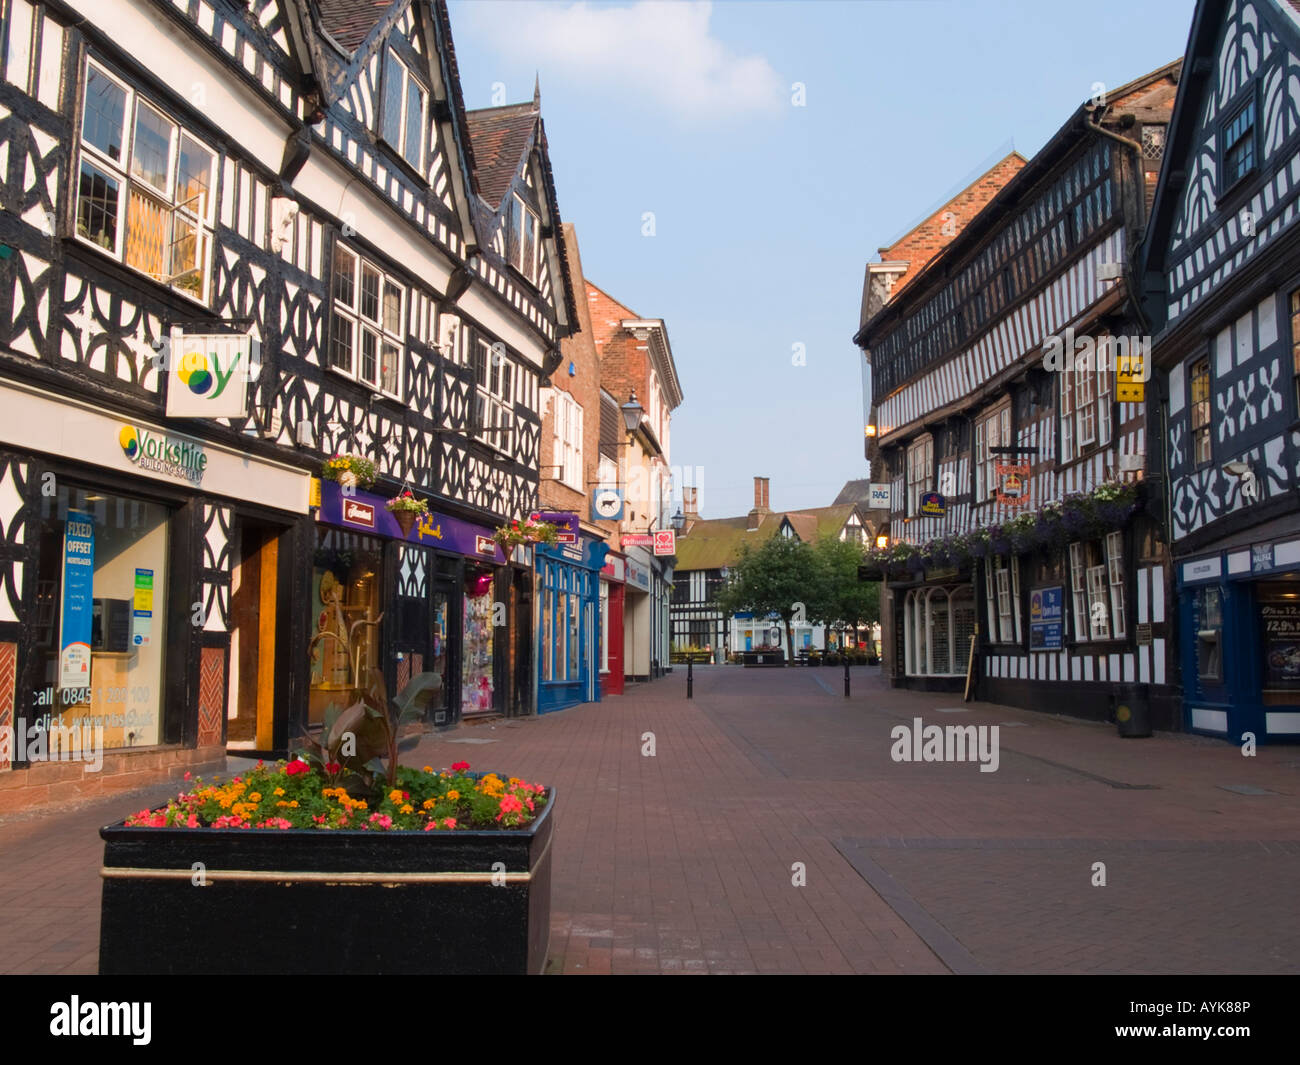 BLACK and WHITE TUDOR BUILDINGS 16th century timber-framed Crown Hotel in High Street Nantwich Cheshire England - Stock Image